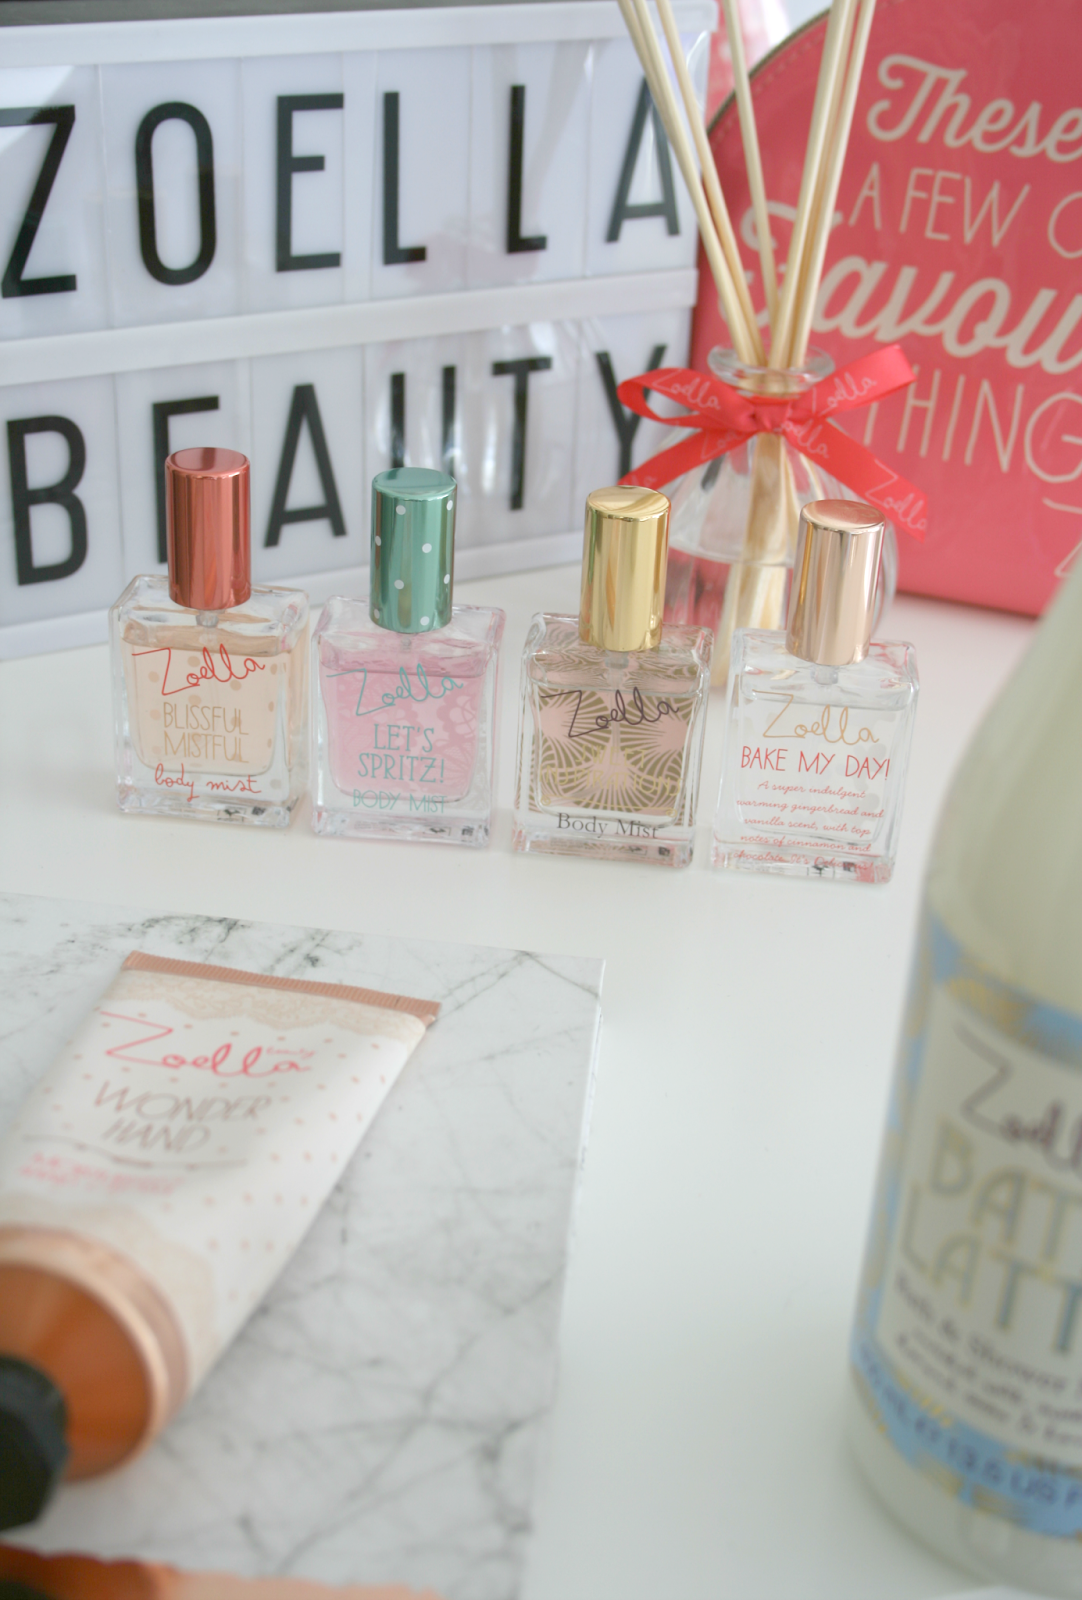 Zoella Beauty Secret Scenta